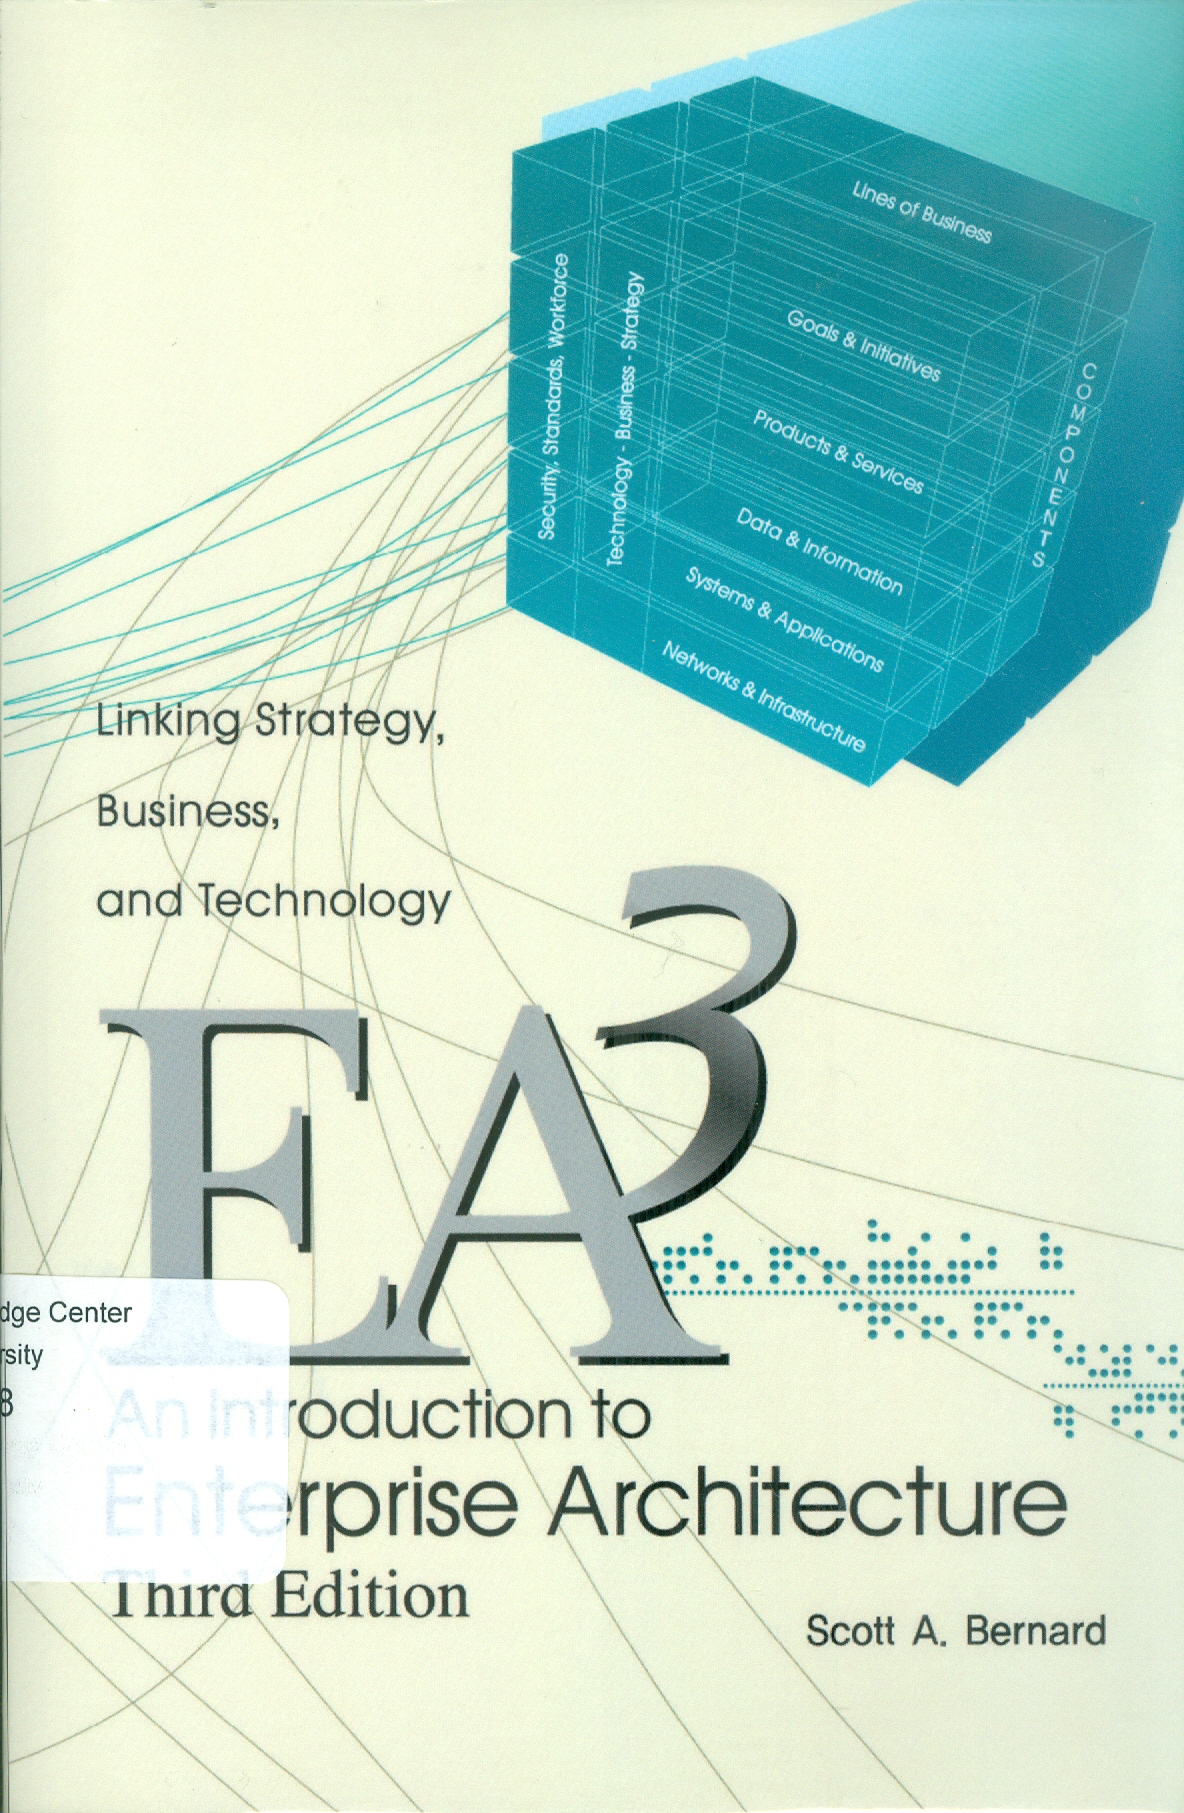 EA3 An Introduction to Enterprise Architecture0001.jpg